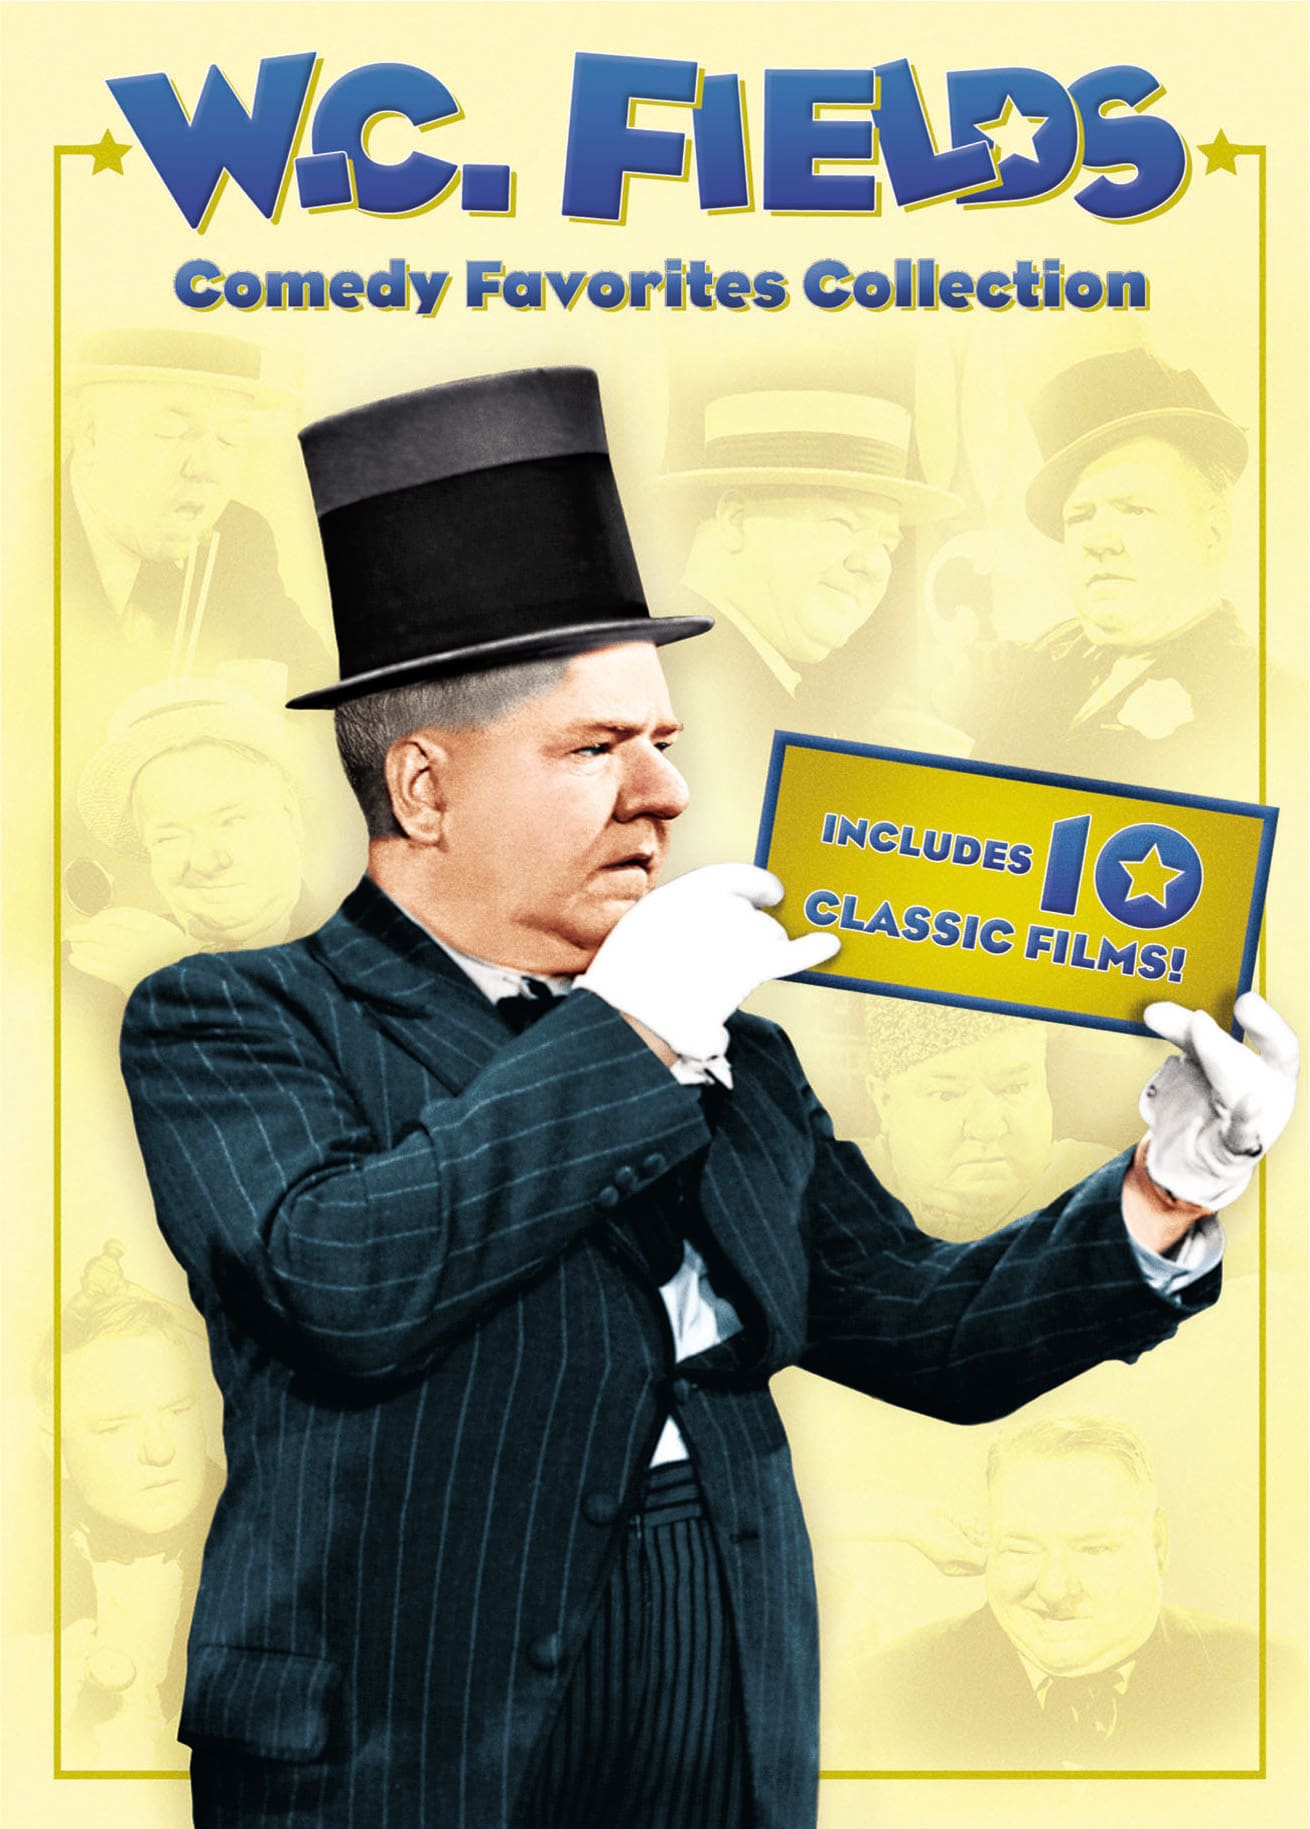 W.C. Fields Comedy Favorites Collection (2013) [DVD]